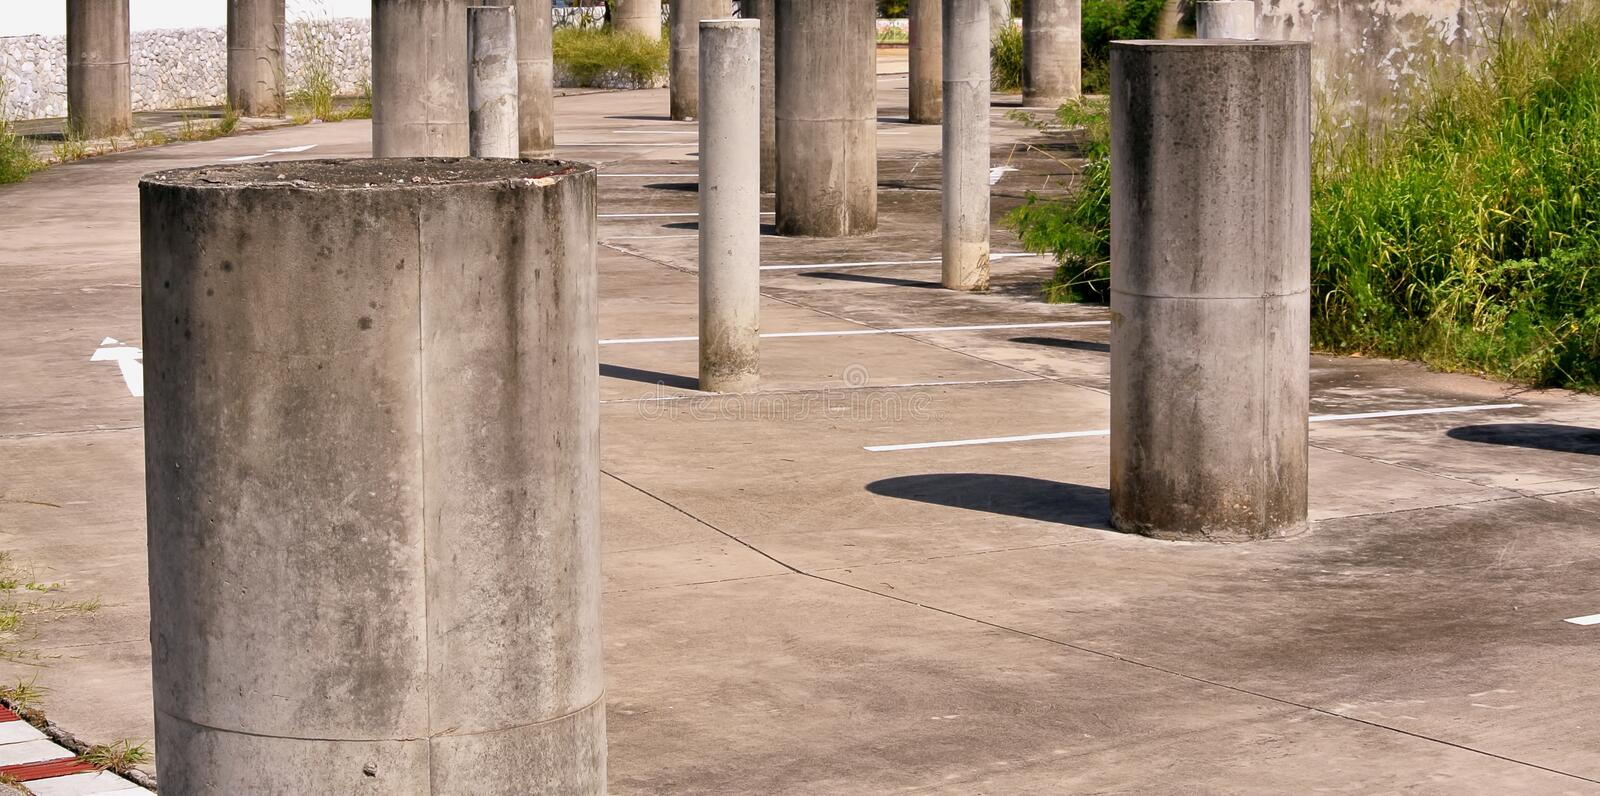 Group of Concrete Pillars at Abandoned Parking Lot. Group of Grungy Concrete Pillars at Abandoned Parking Lot stock photos